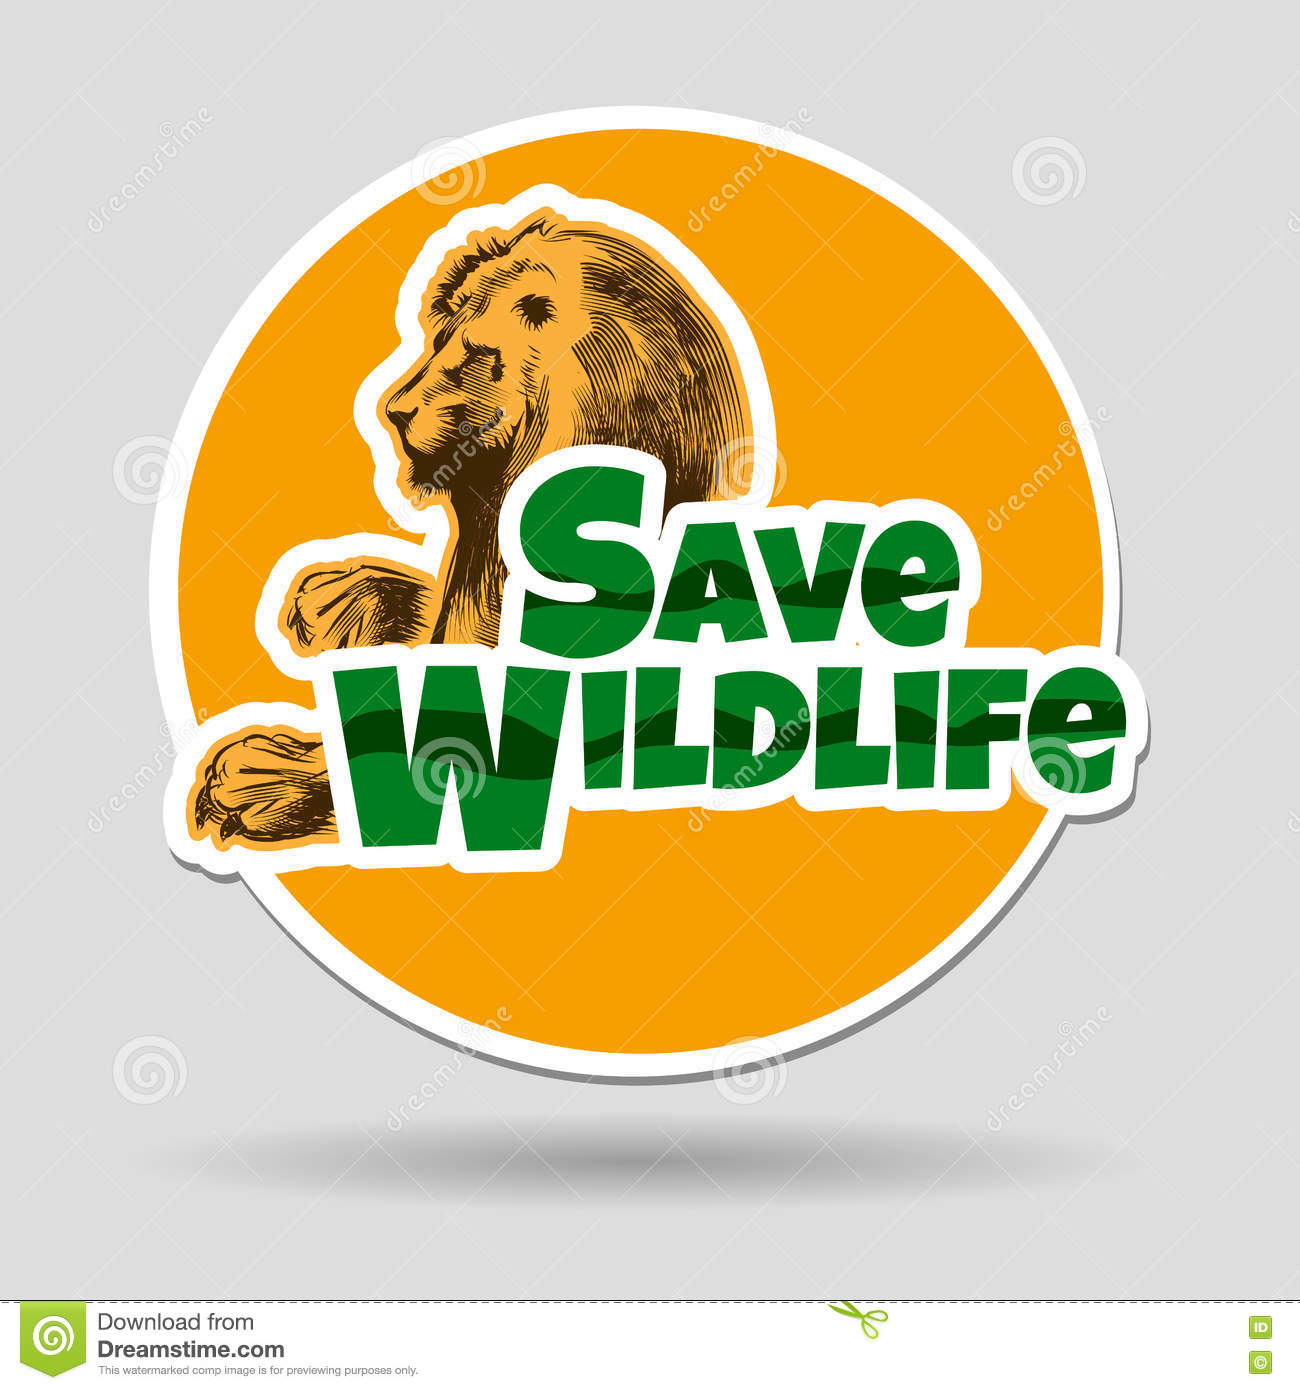 Related Keywords & Suggestions for save wildlife